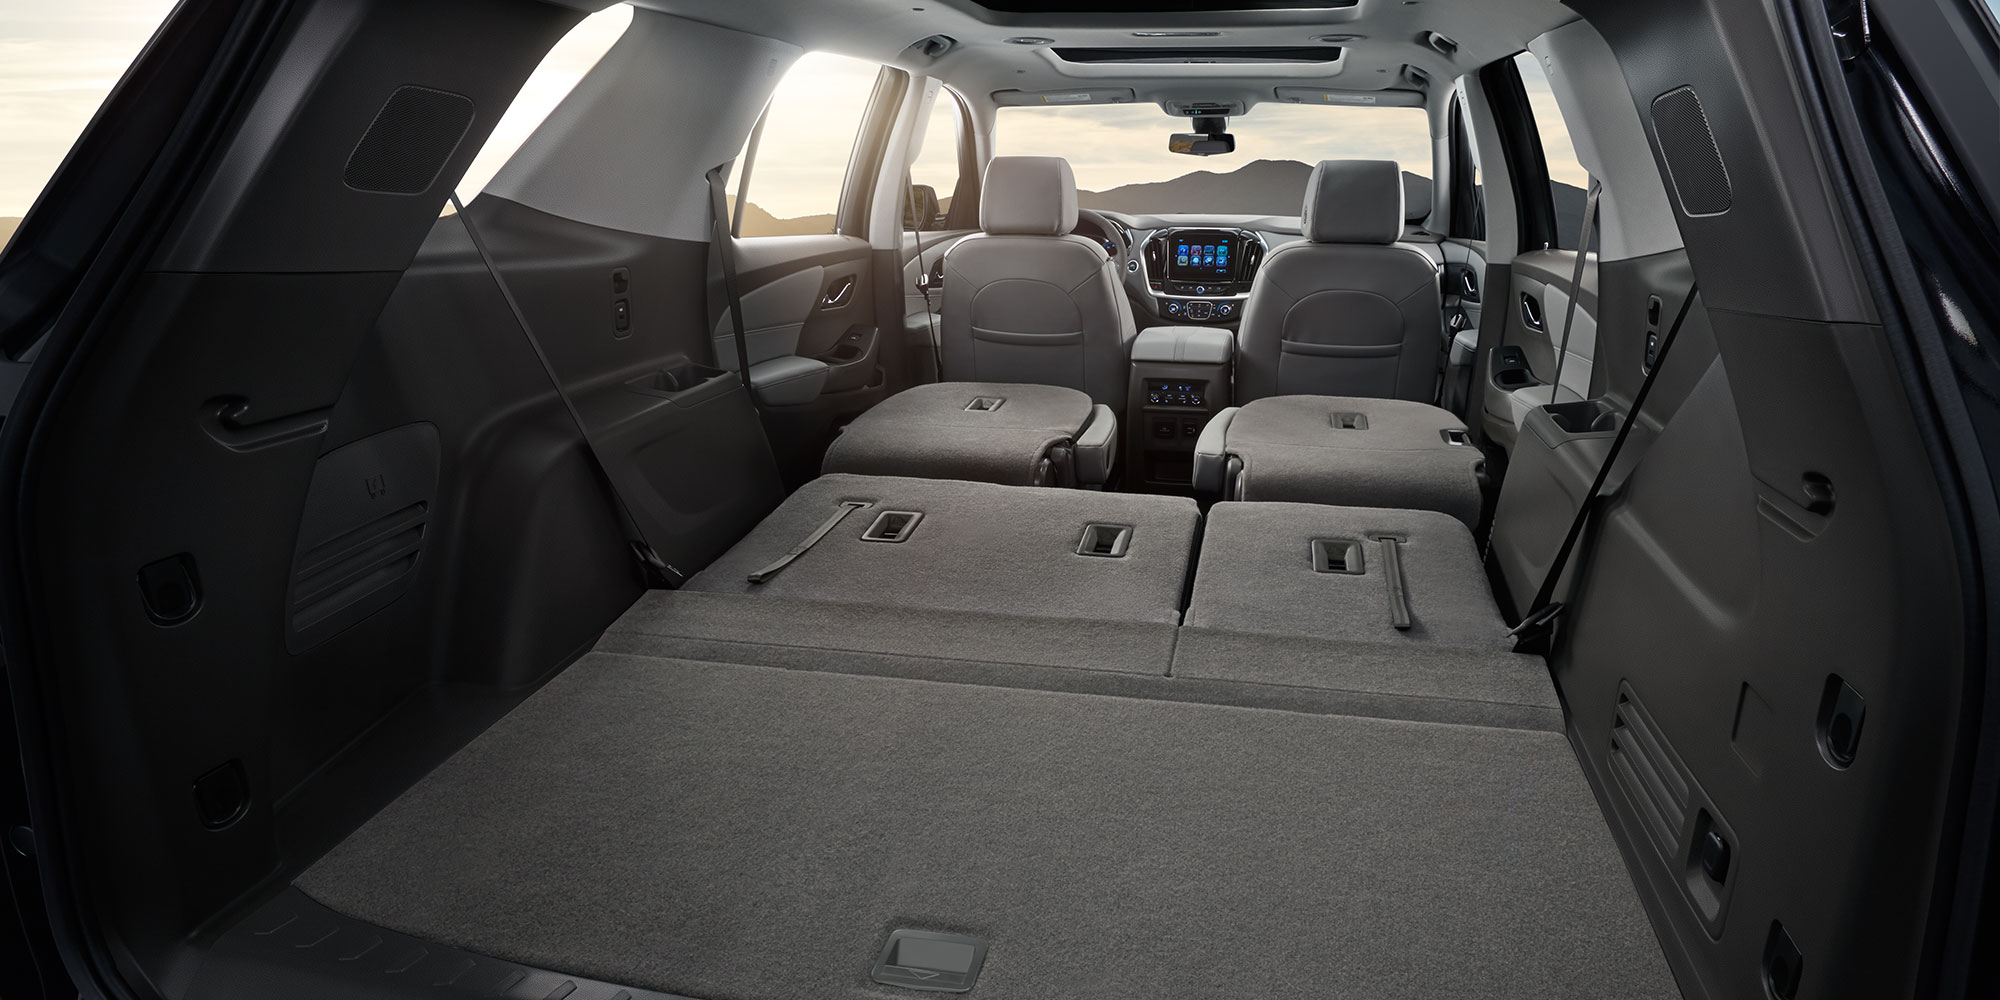 You'll Love the Traverse's Massive Interior